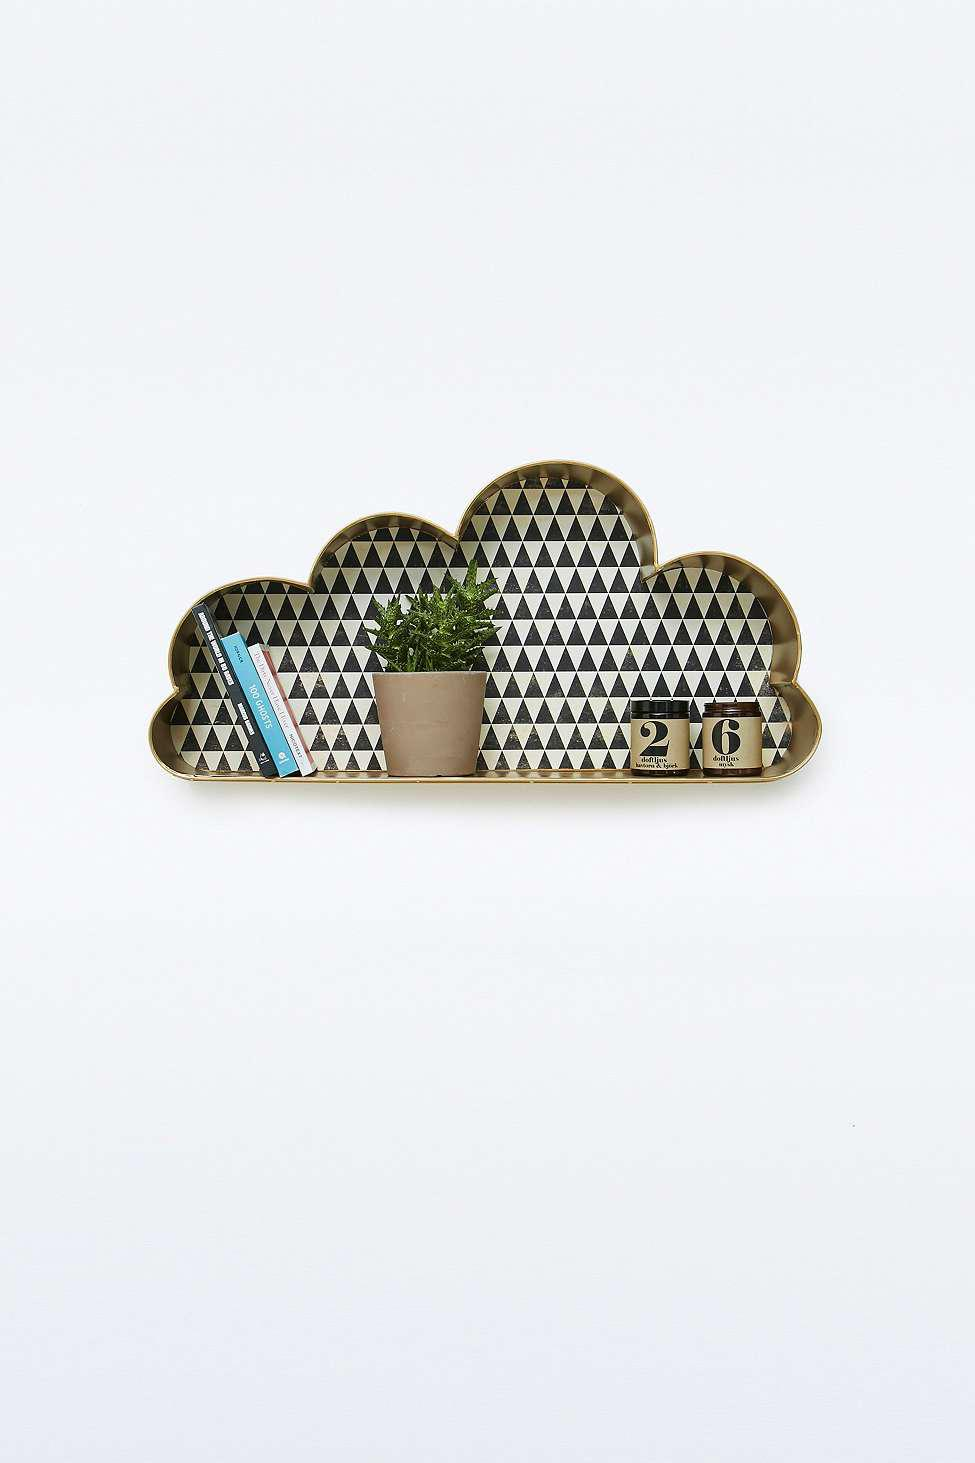 cloud shelf urban outfitters from urban outfitters quick. Black Bedroom Furniture Sets. Home Design Ideas